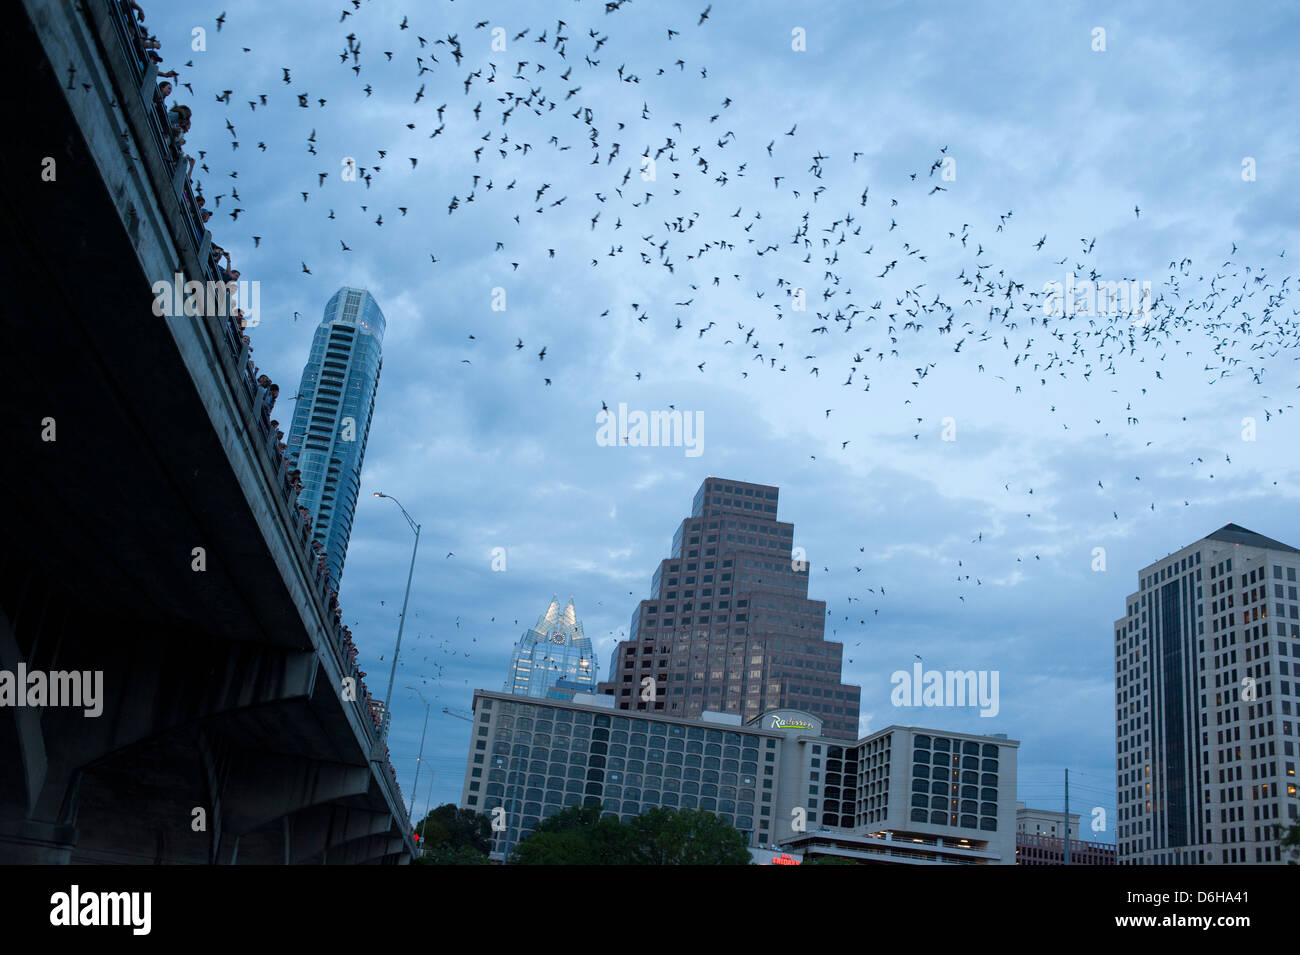 usa-texas-tx-austin-mexican-free-tailed-bats-emerge-from-their-roosts-D6HA41.jpg